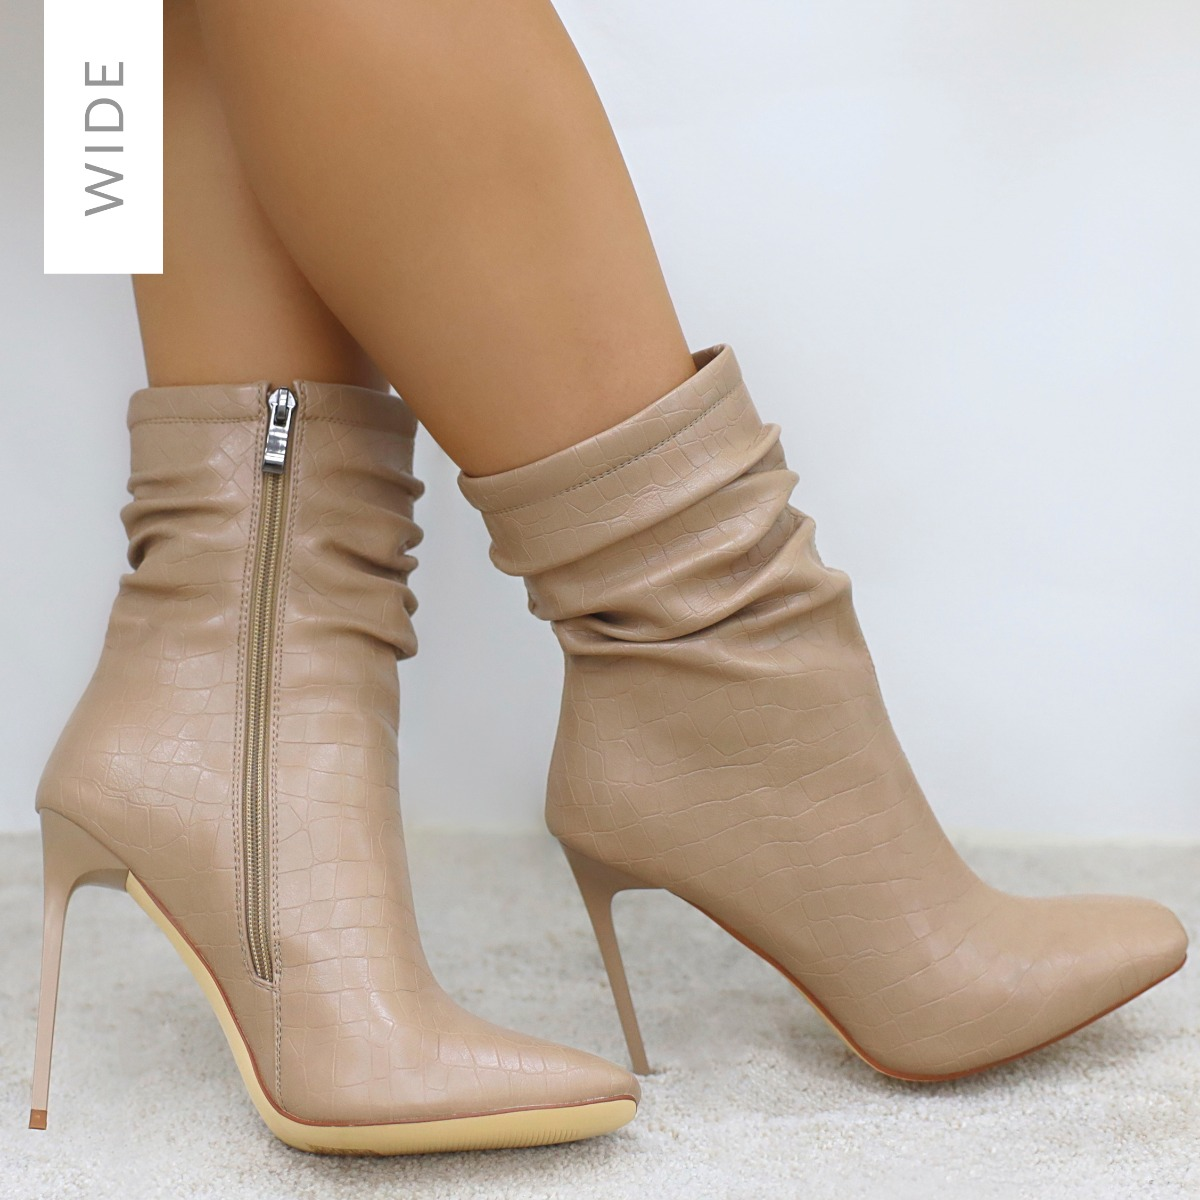 Alivia Wide Fit Nude Faux Croc Print Ruched Stiletto Ankle Boots